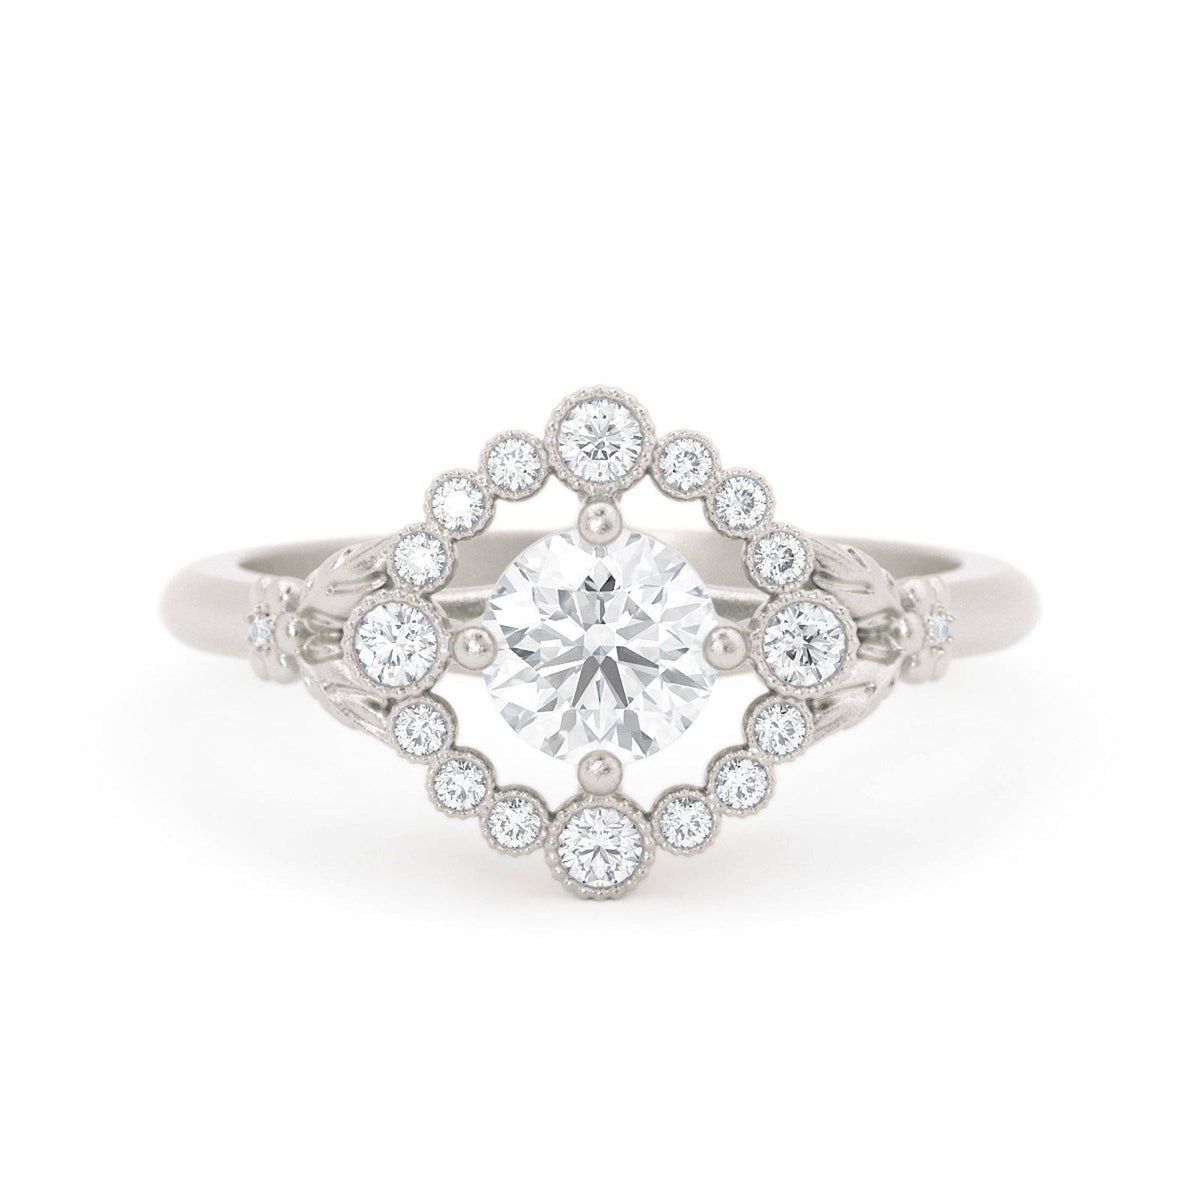 Scarlett Vintage Inspired Engagement Ring White Gold